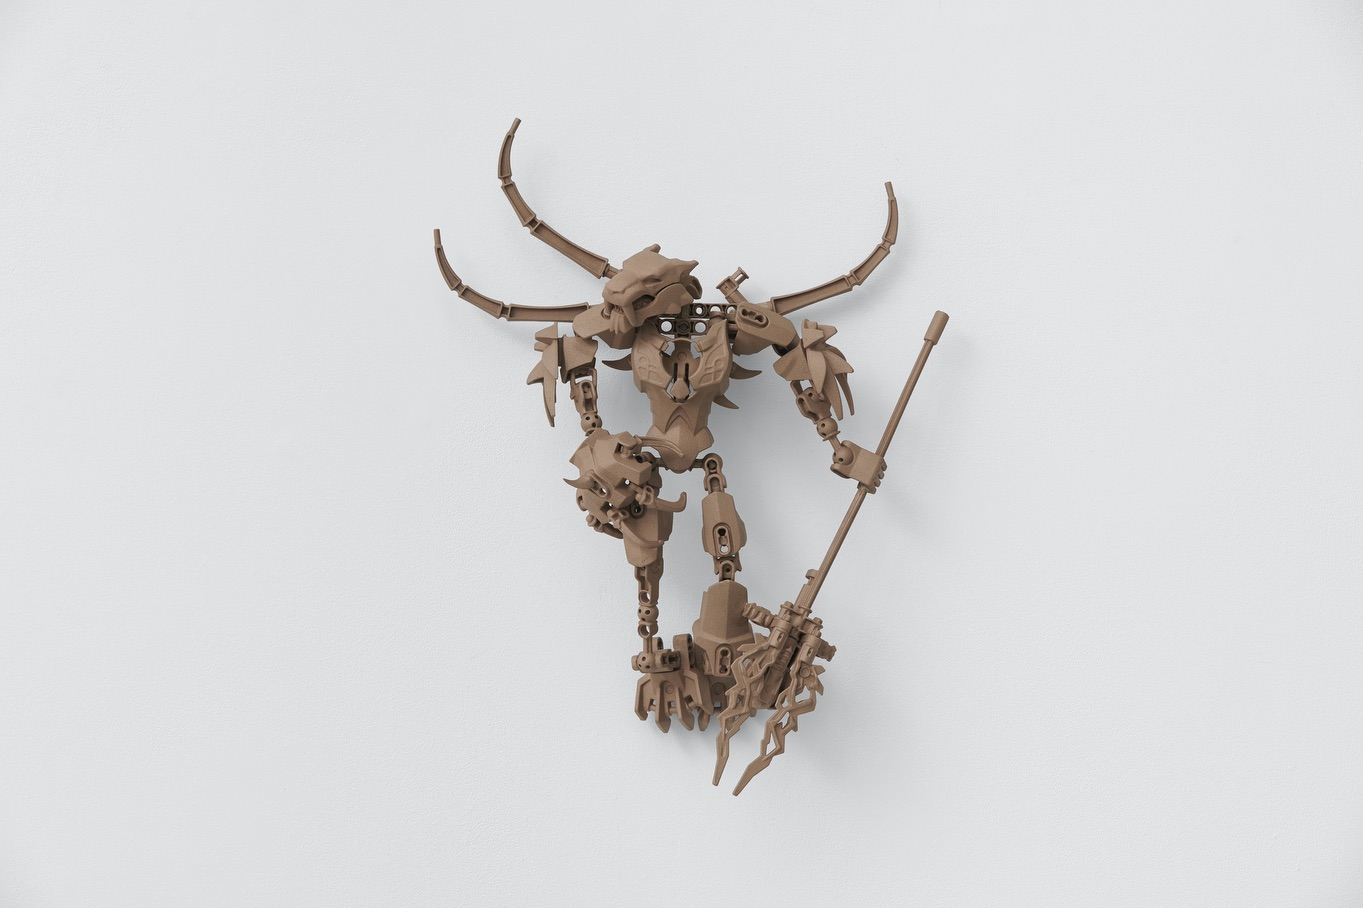 Yngve Holen, The Animal House Is Closed, 2019, bronze, 49 x 41.5 x 13 cm, 19 1/4 x 16 3/8 x 5 1/8 ins. Photo: Ben Westoby. © Yngve Holen. Courtesy the artist & Modern Art, London